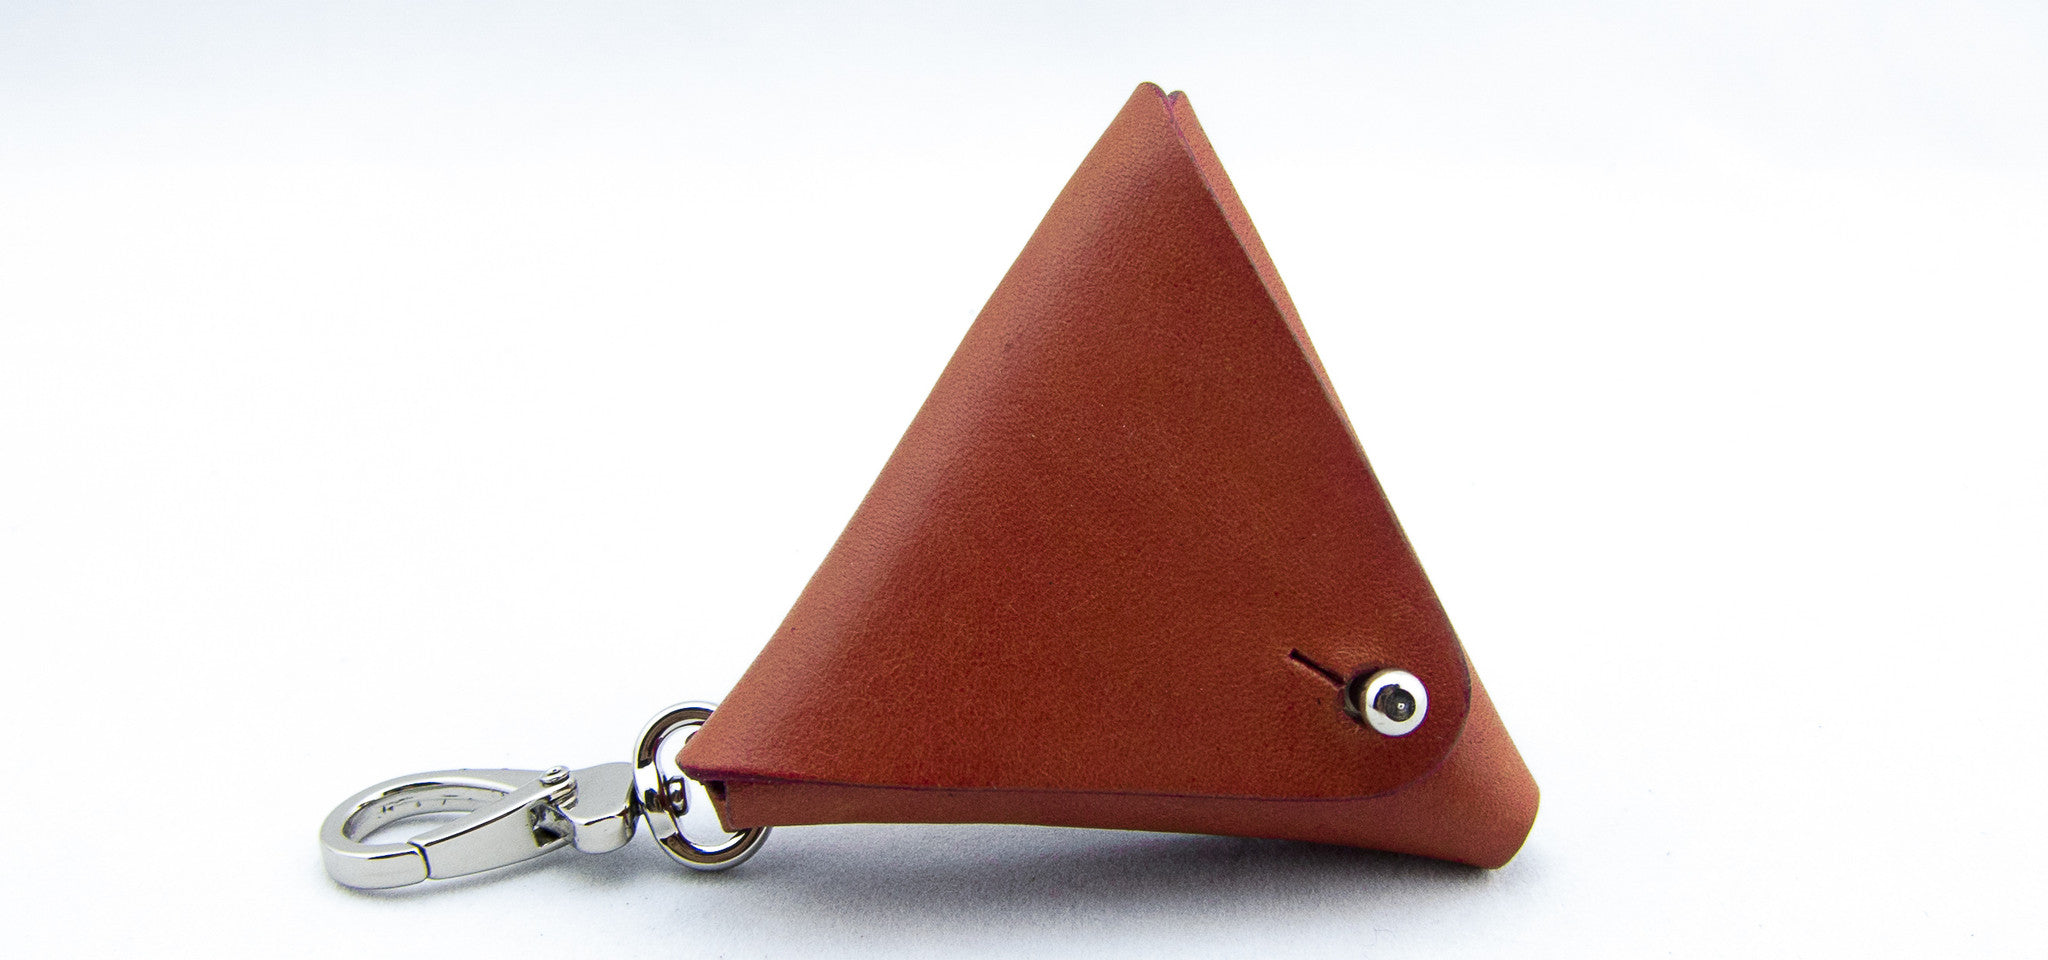 equilateral, a clip-on pouch